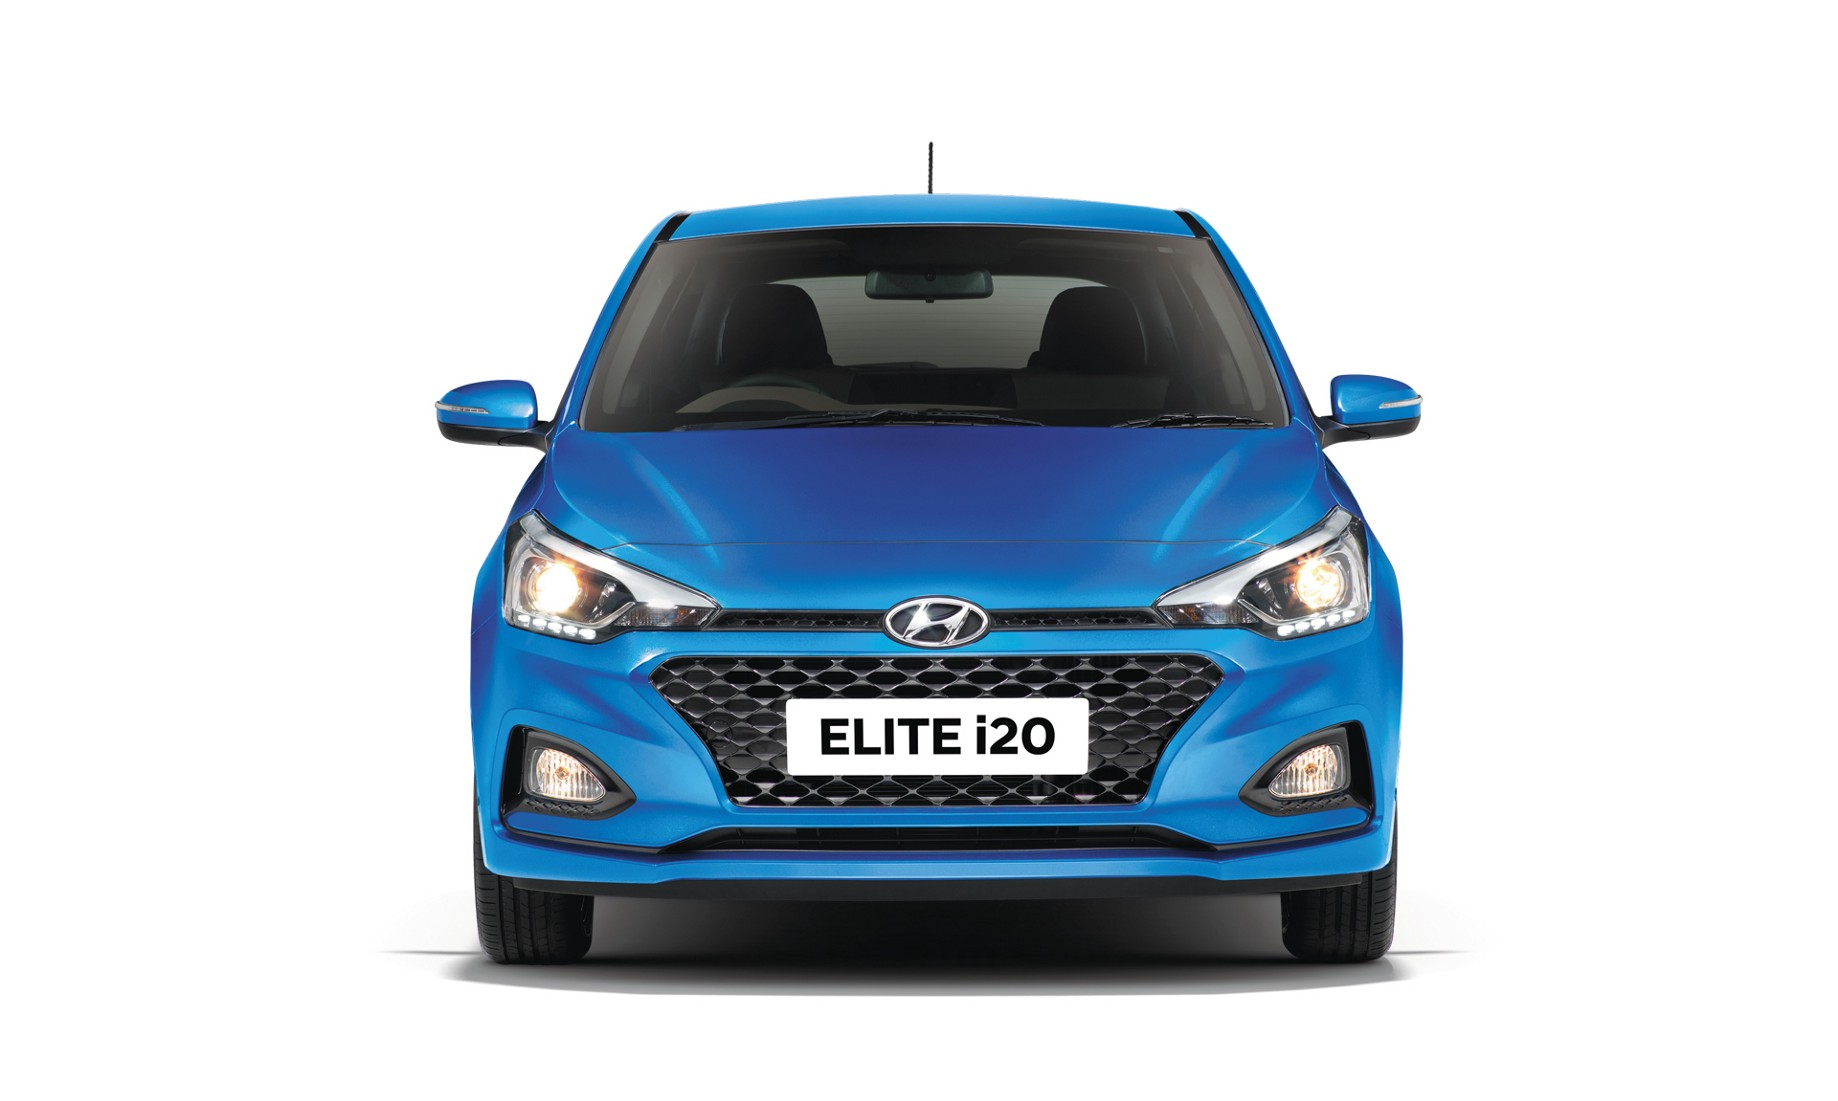 Hyundai launches facelifted 2018 Elite i20 at Auto Expo